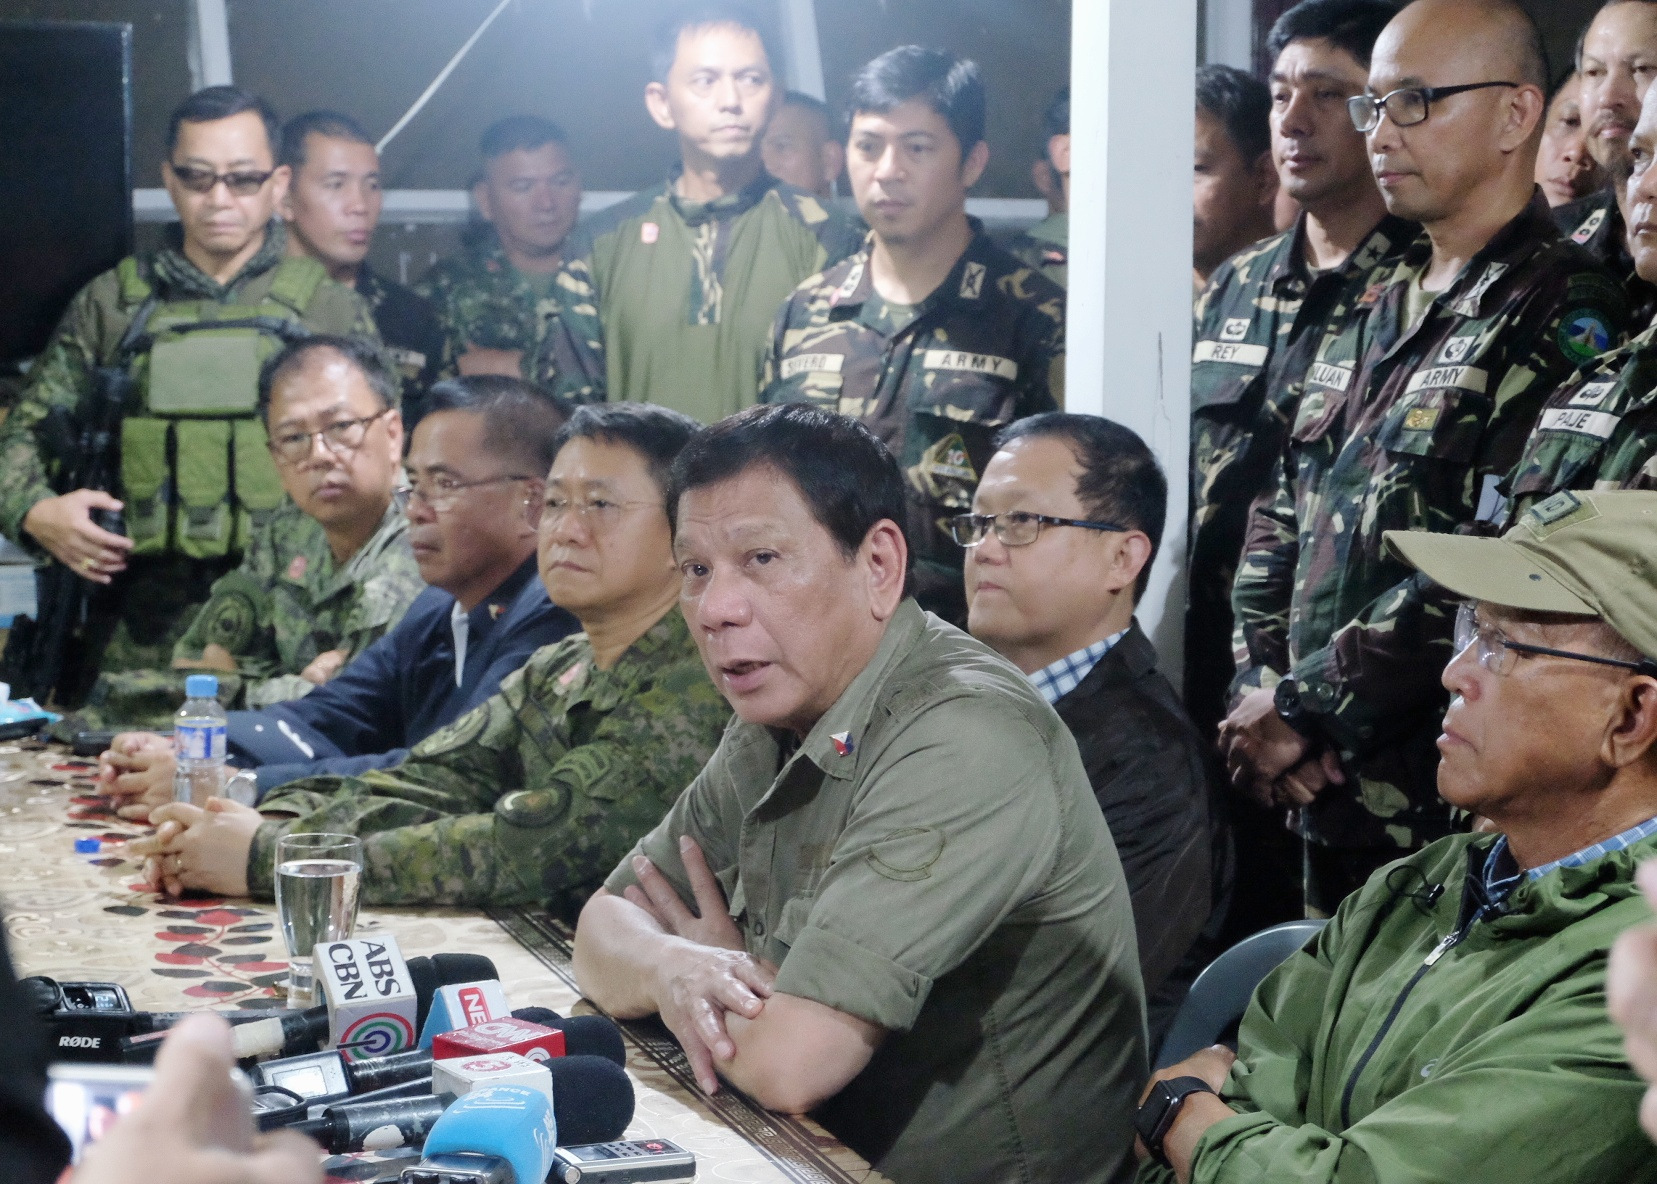 President Rodrigo Duterte along with top military officials visits Camp Ranao, Headquarters of the 103rd Brigade on Marawi city on Thursday, Sept. 21,2017. Duterte reiterates his commitment to rebuild much of the city which is destroyed by the ongoing conflict between terrorists Maute and Abu Sayyaf Groups and government forces. Photo by Bobby Lagsa/Rappler